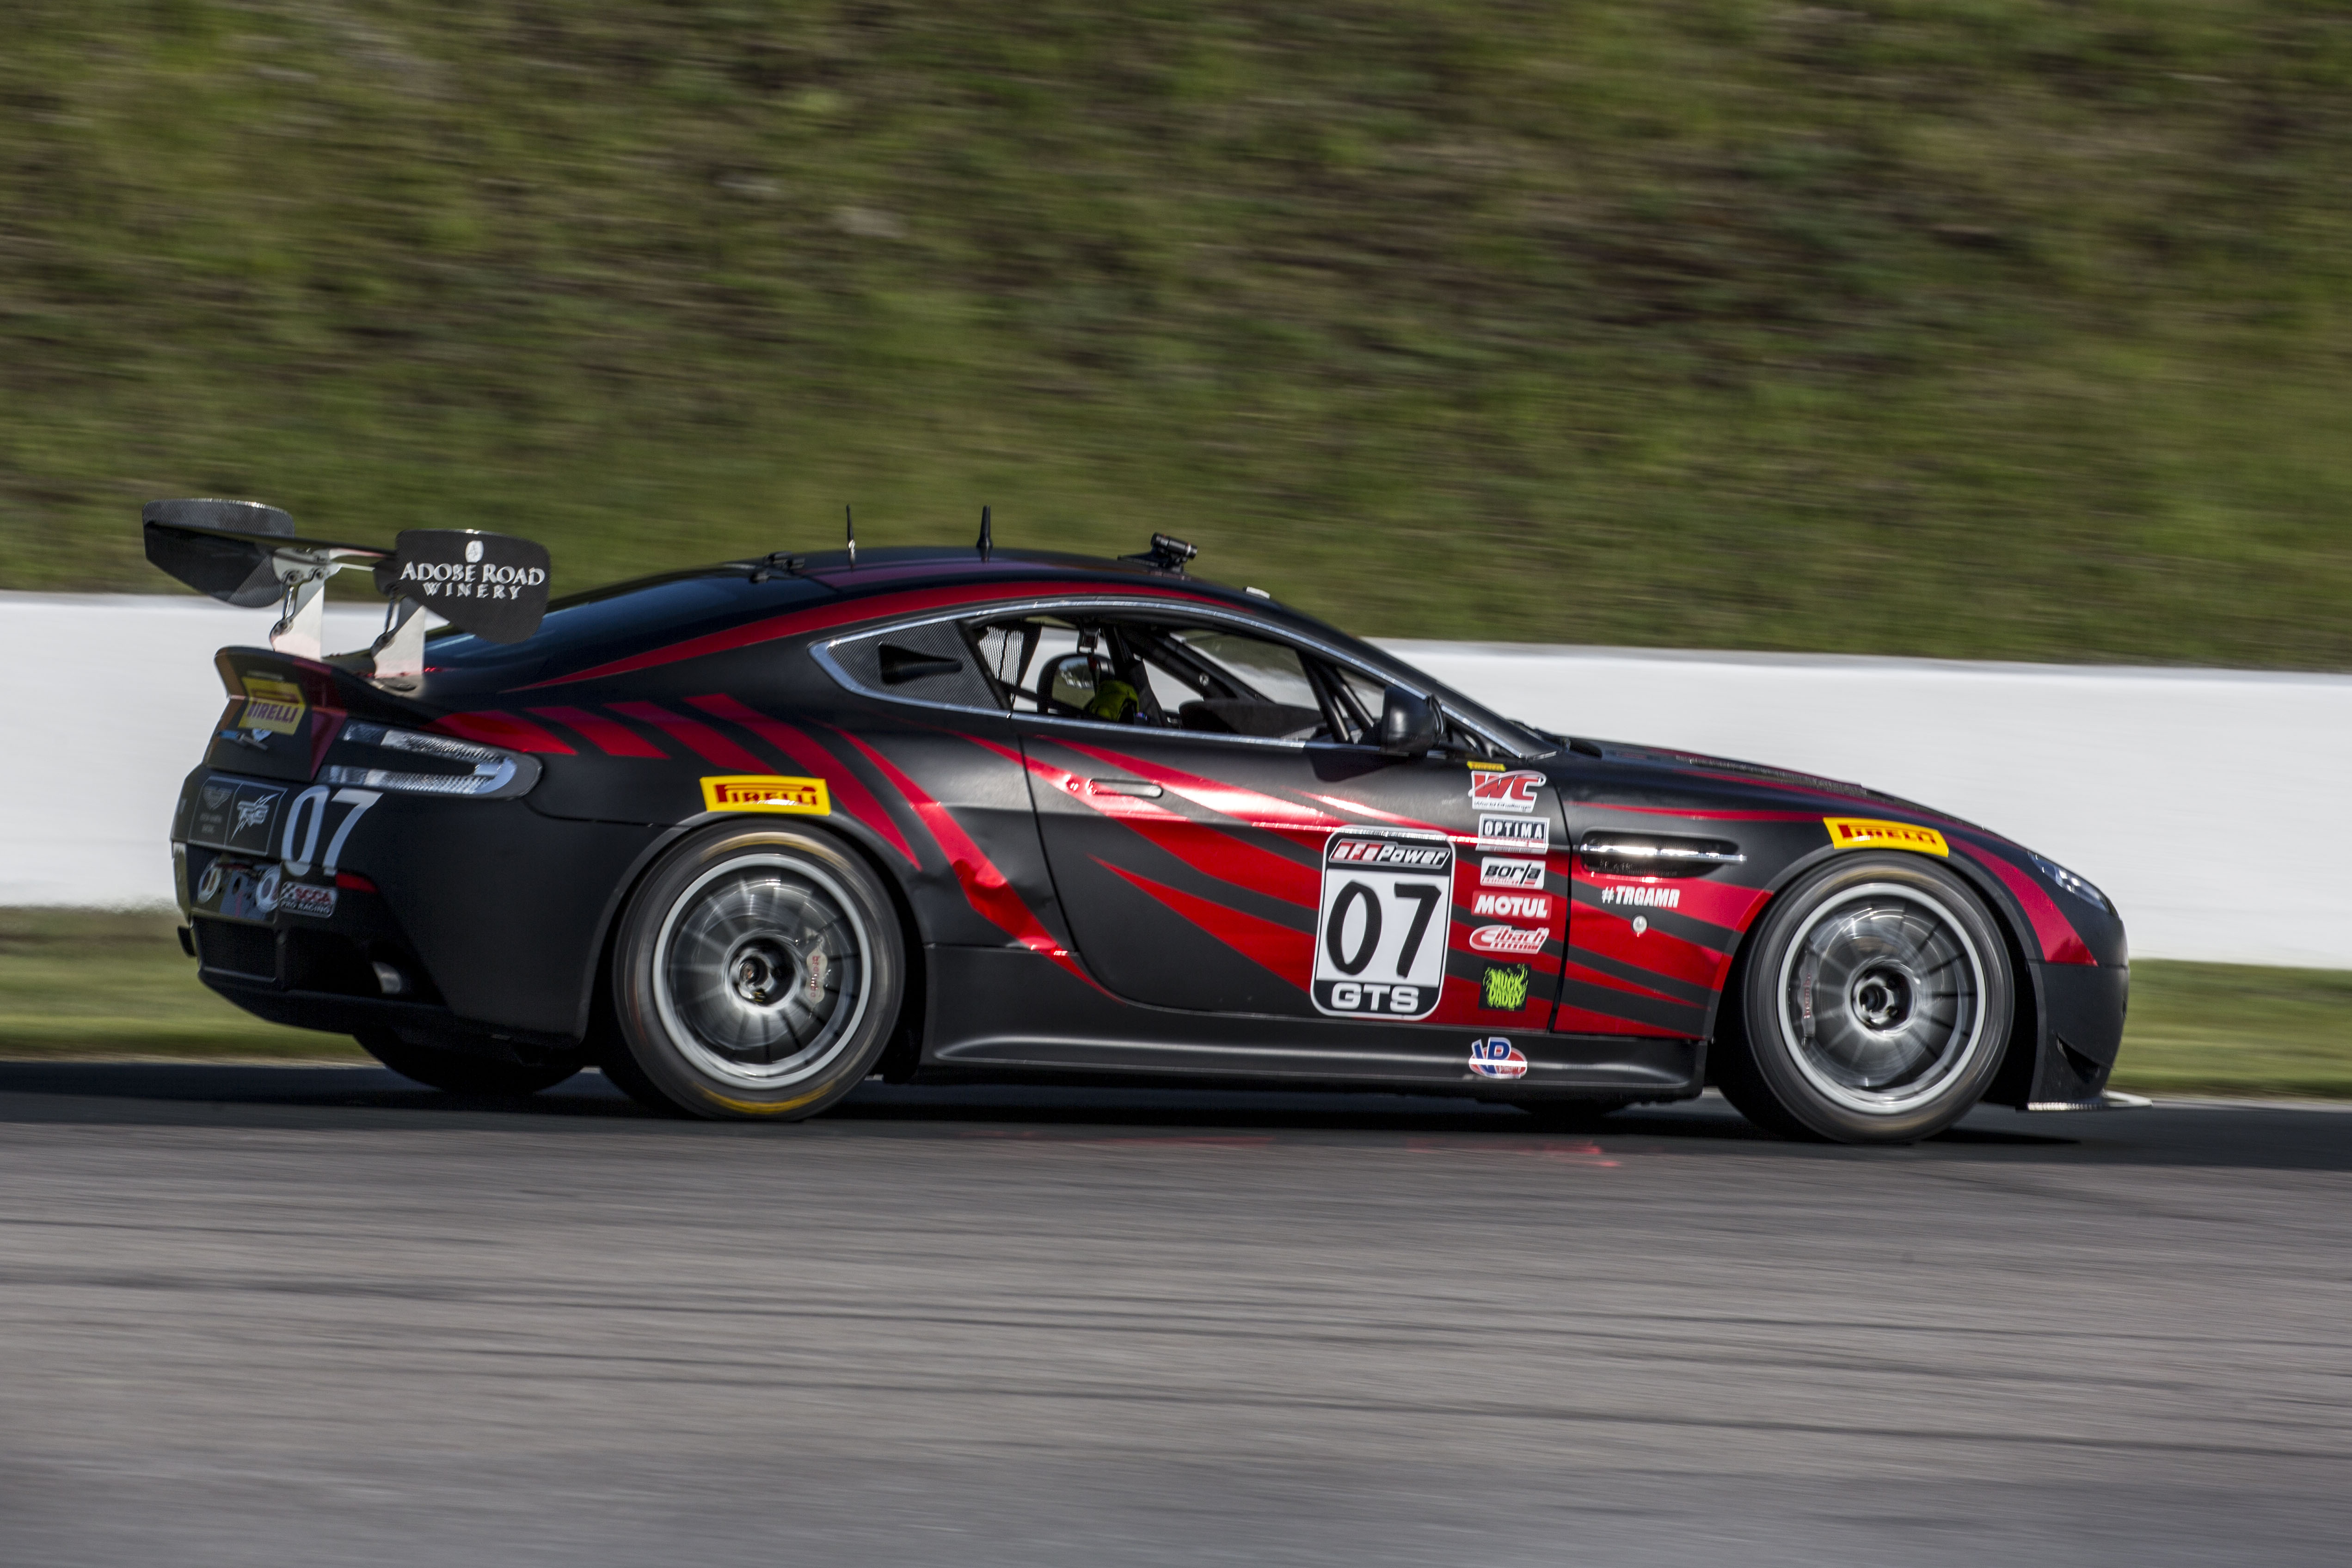 2017 Aston Martin V8 Vantage Gt4 The Racers Group High Performance Racing Parts Service And Vinyl In North Bay